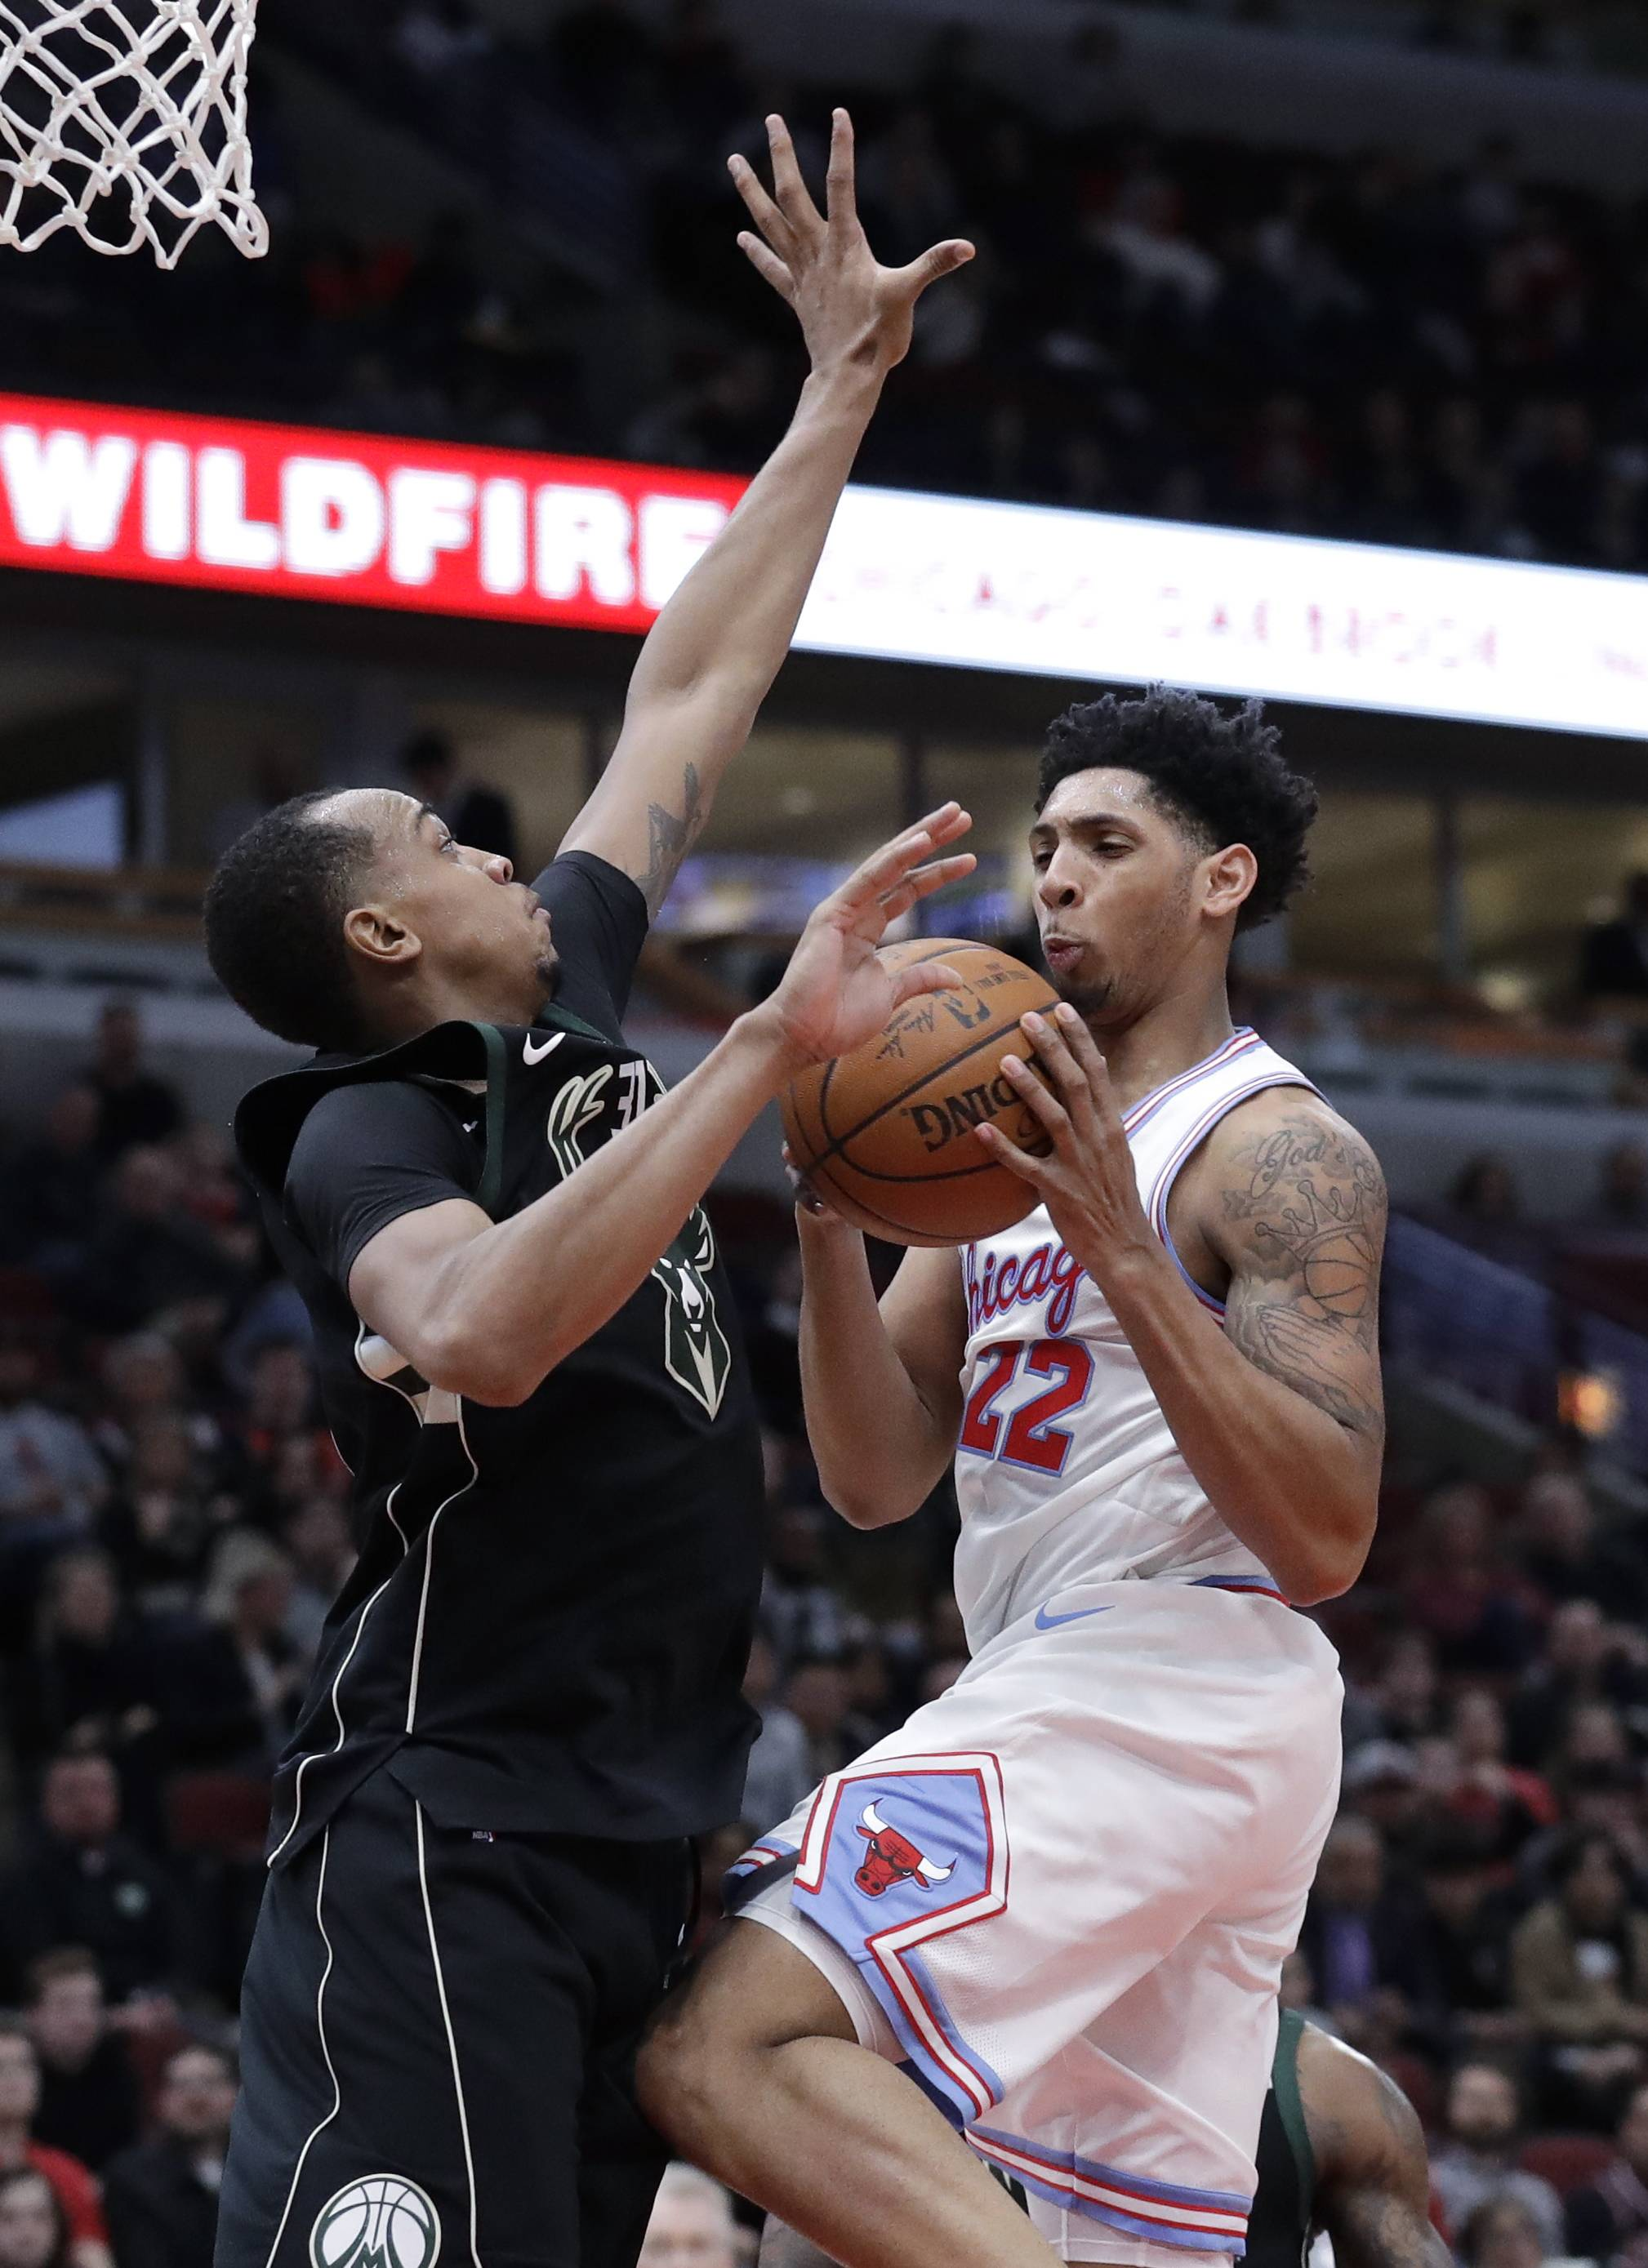 Milwaukee Bucks forward John Henson, left, guards Chicago Bulls guard Cameron Payne during the second half of an NBA basketball game Friday, March 23, 2018, in Chicago. (AP Photo/Nam Y. Huh)